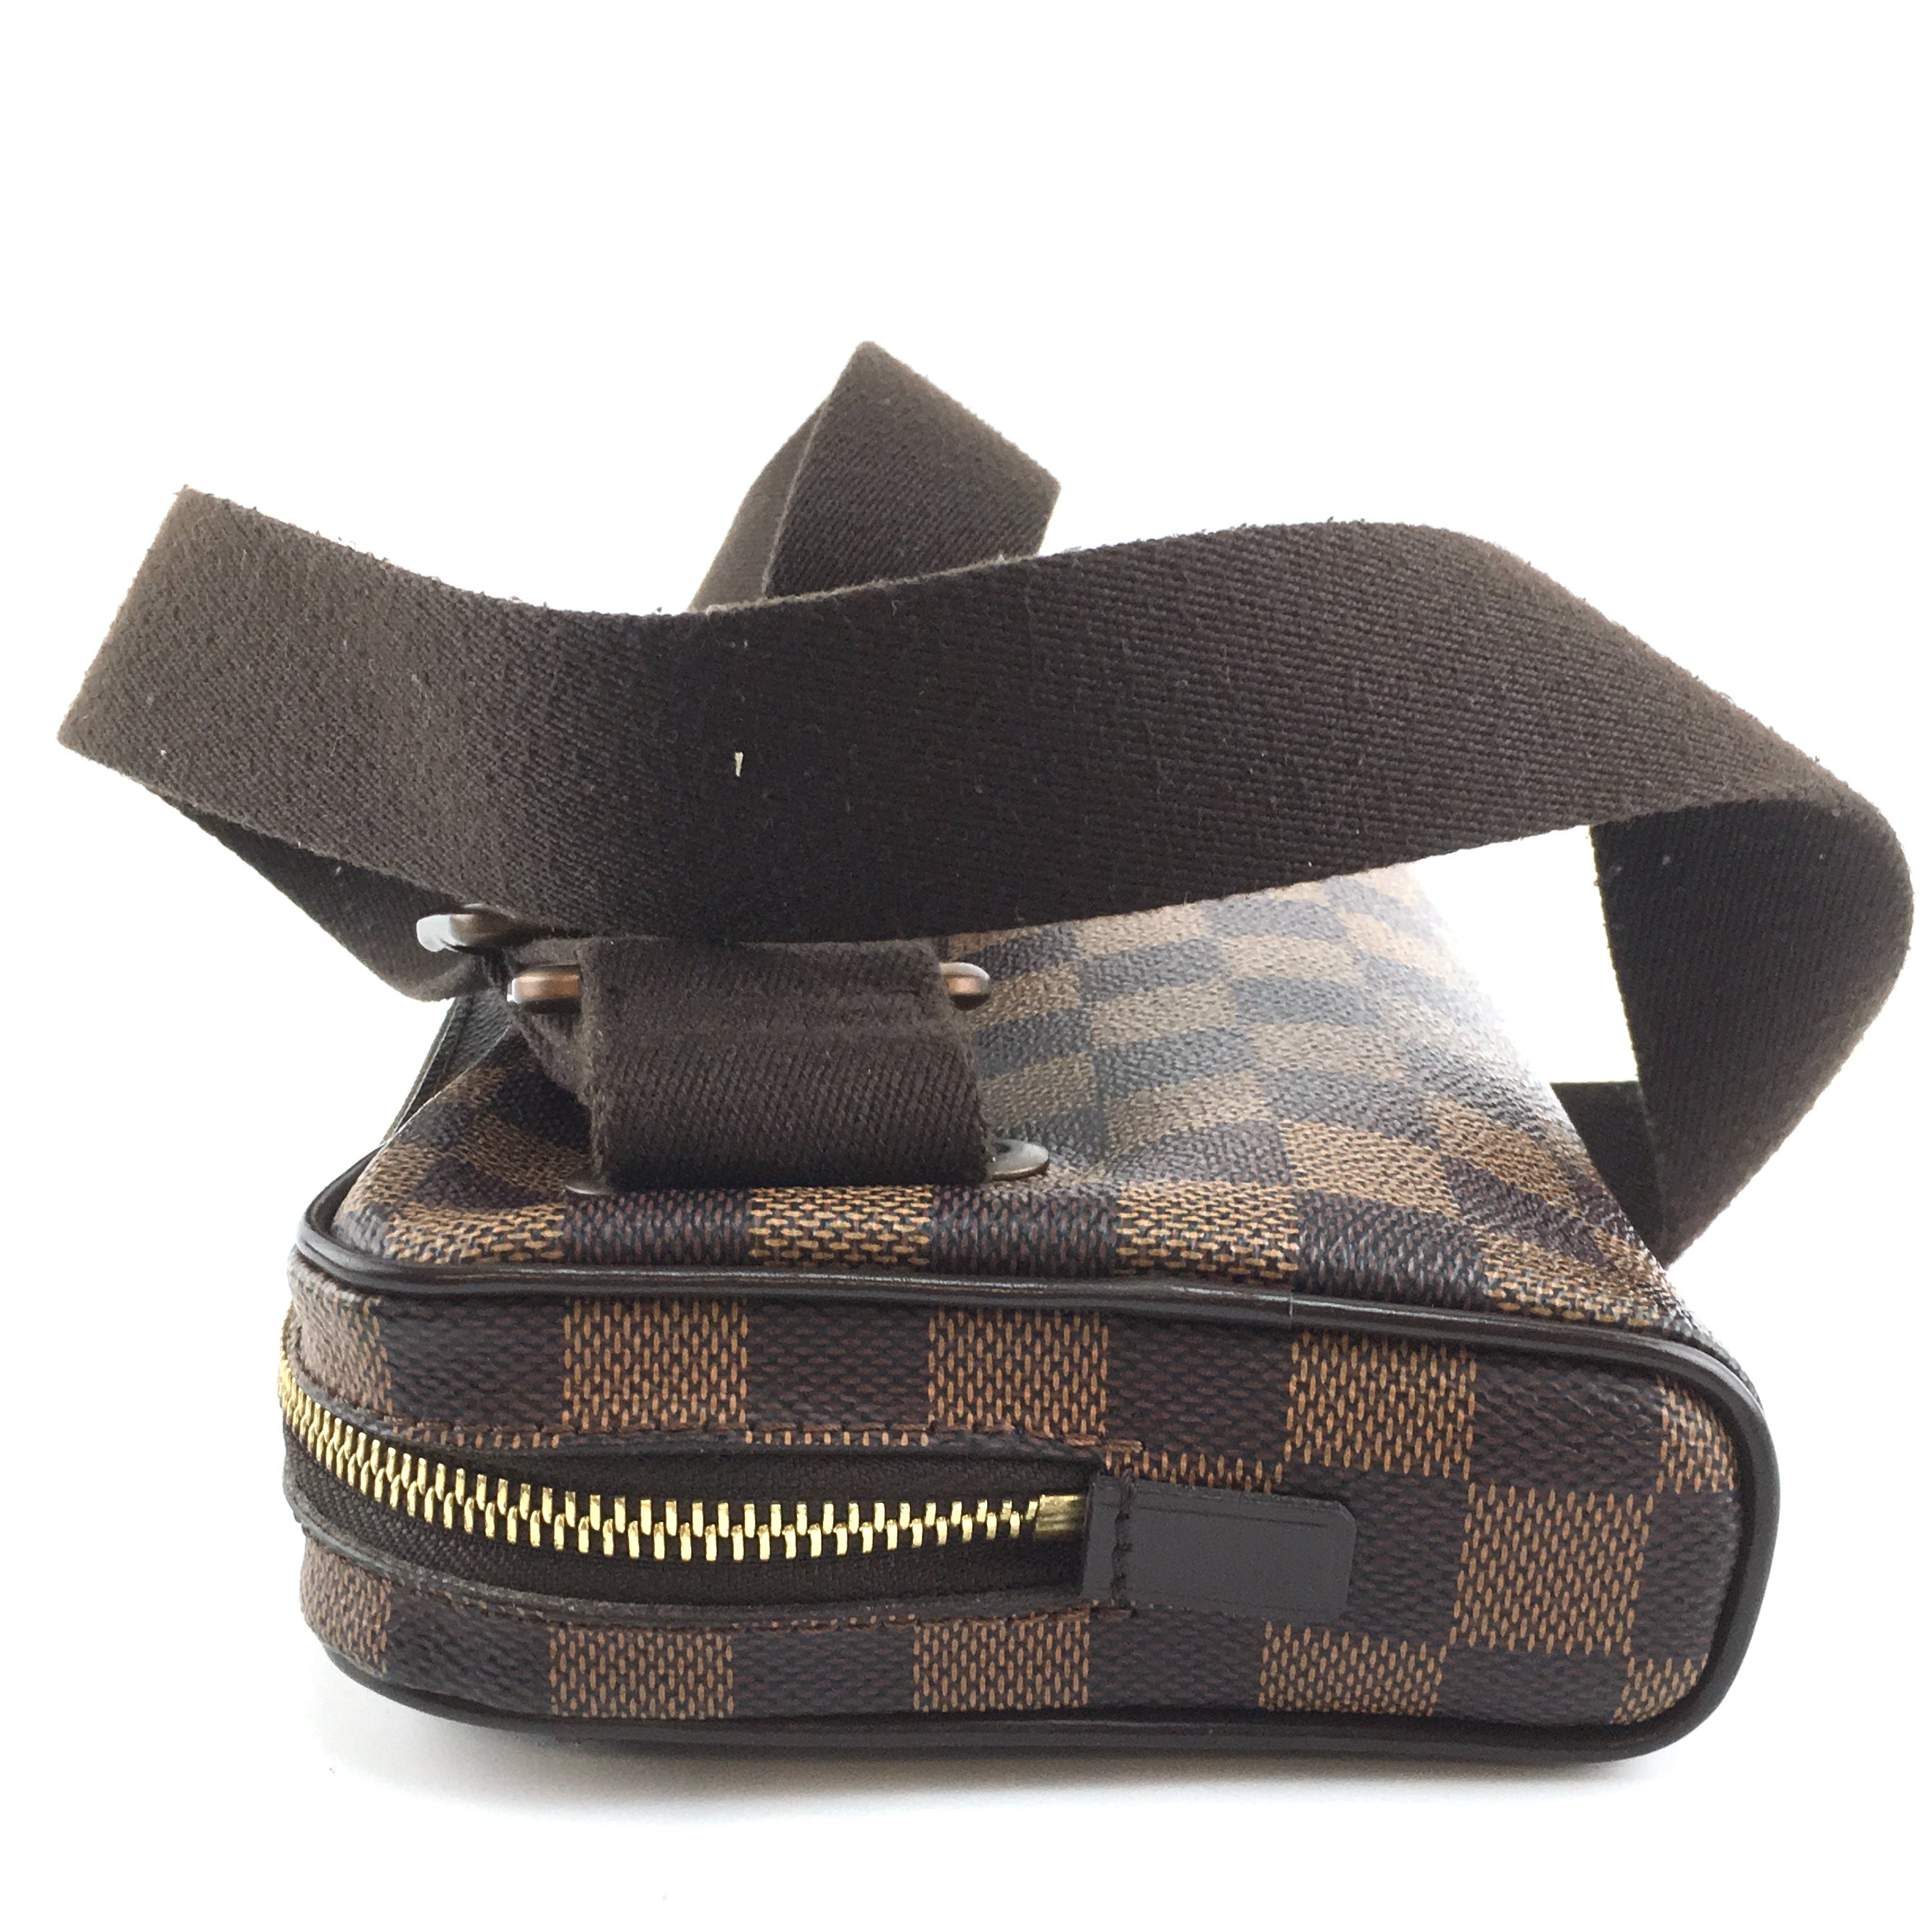 Louis Vuitton Brooklyn Bumbag Damier Ébène Canvas